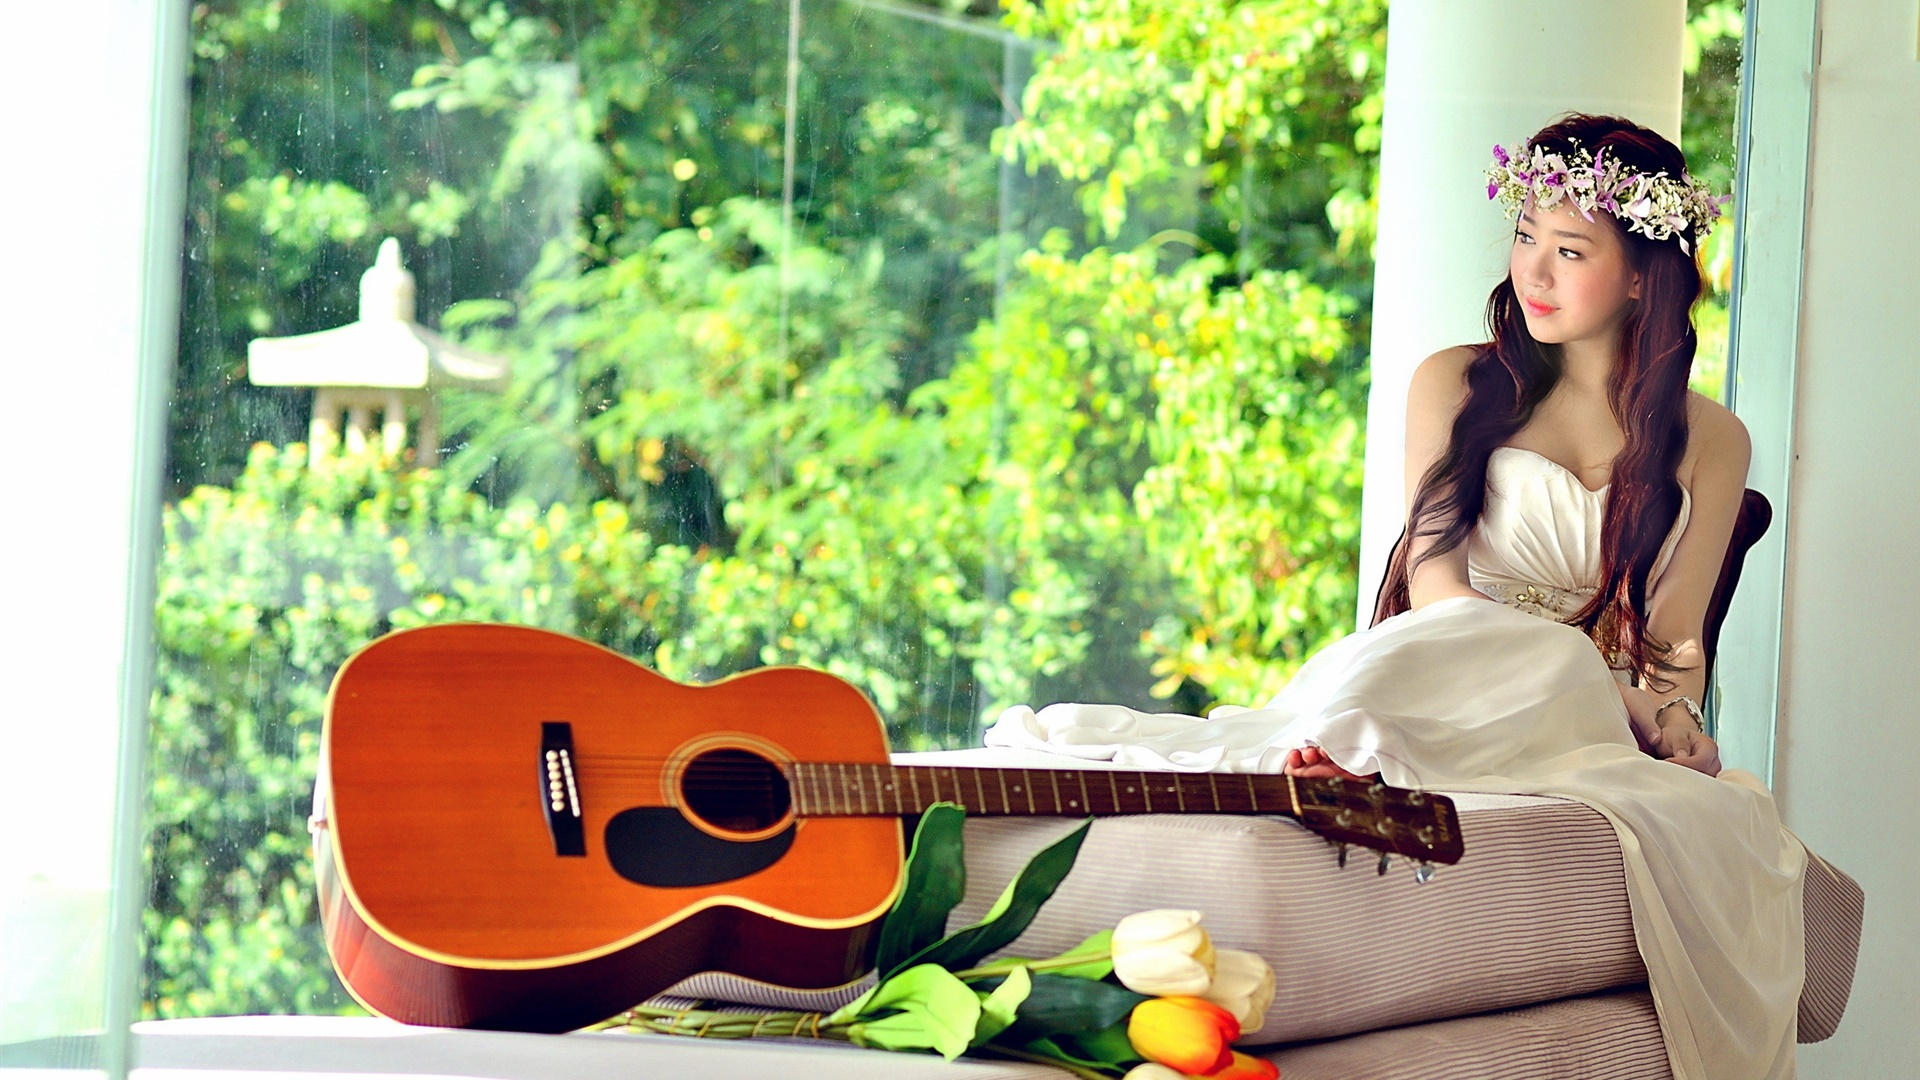 Asian music girl, white dress, guitar, tulips 1920x1080 wallpaper